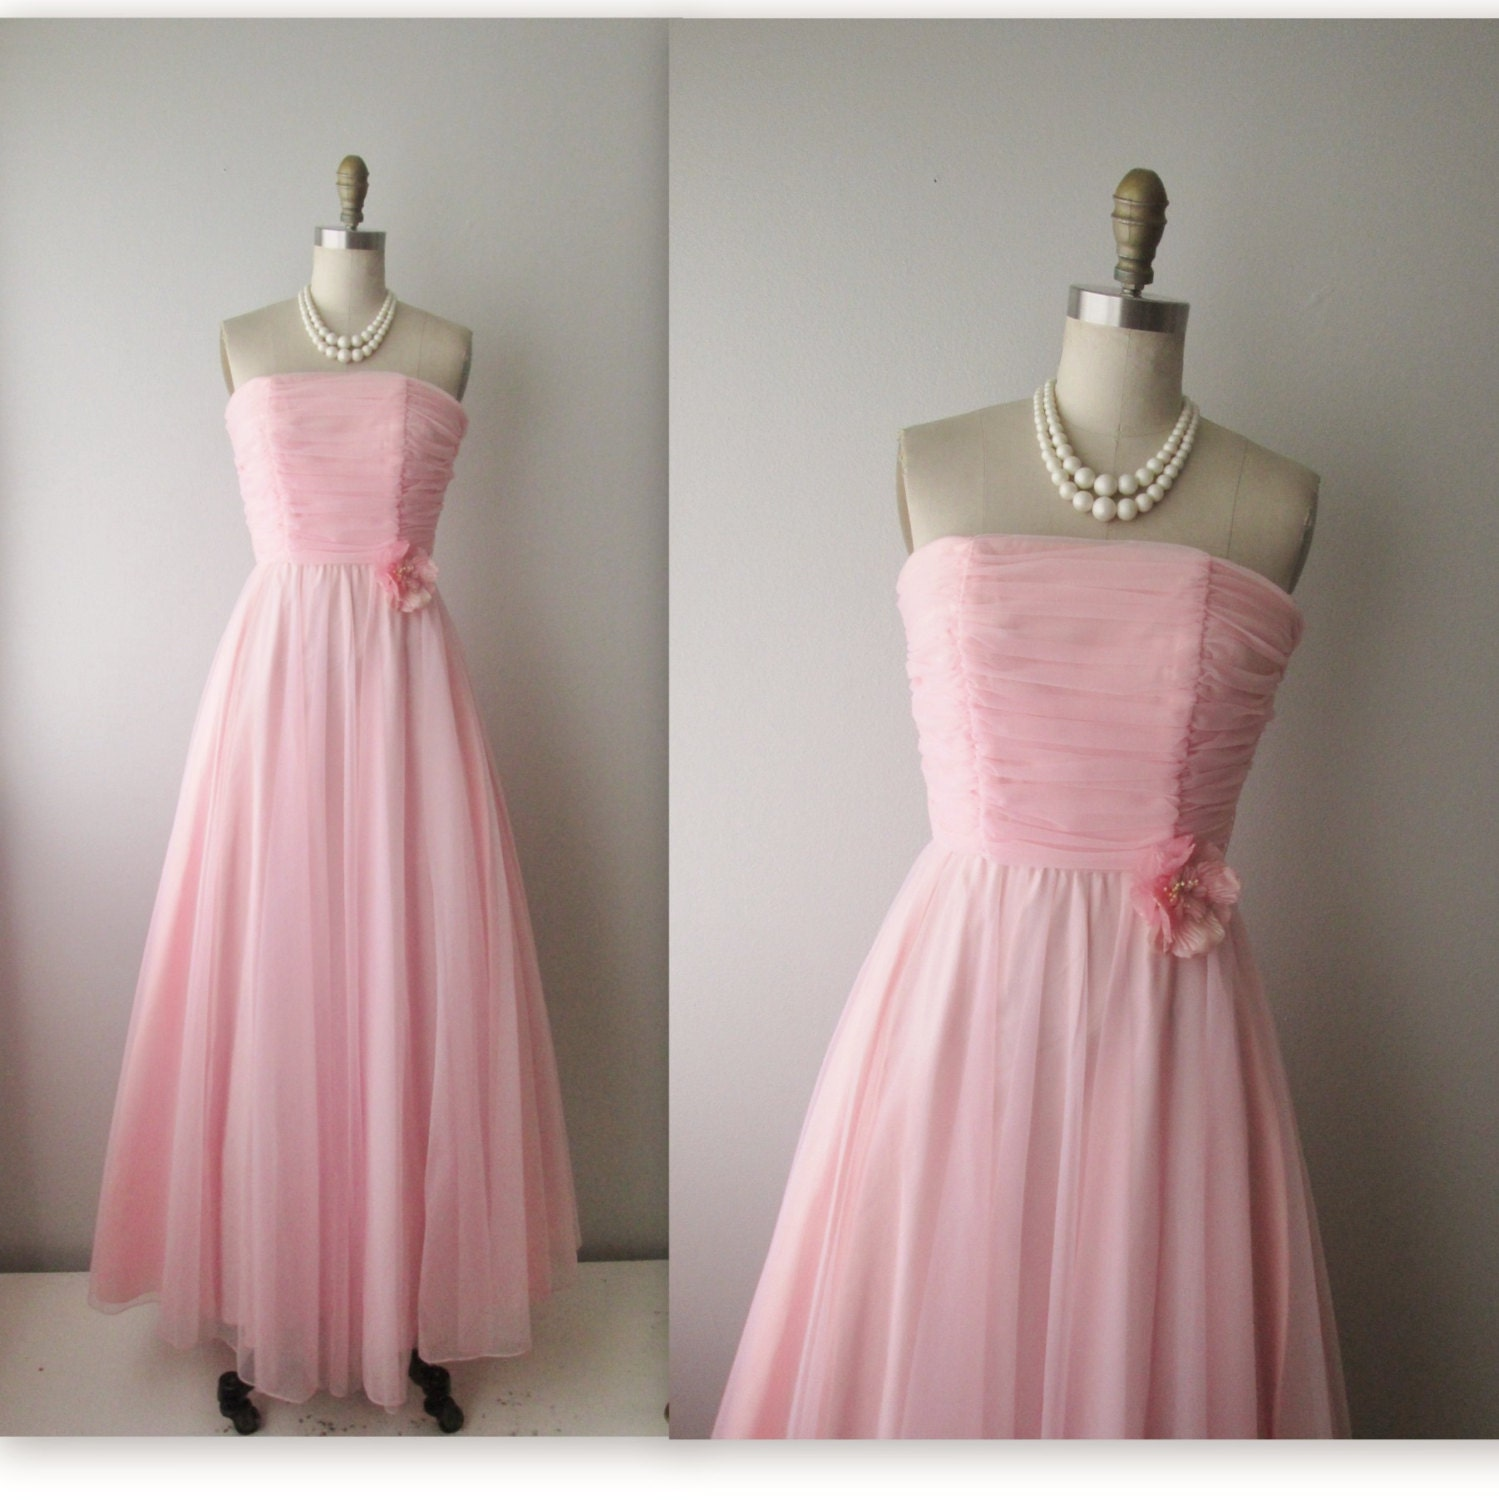 60s Prom Dress // Vintage 1960s Ruched Pink Chiffon Wedding